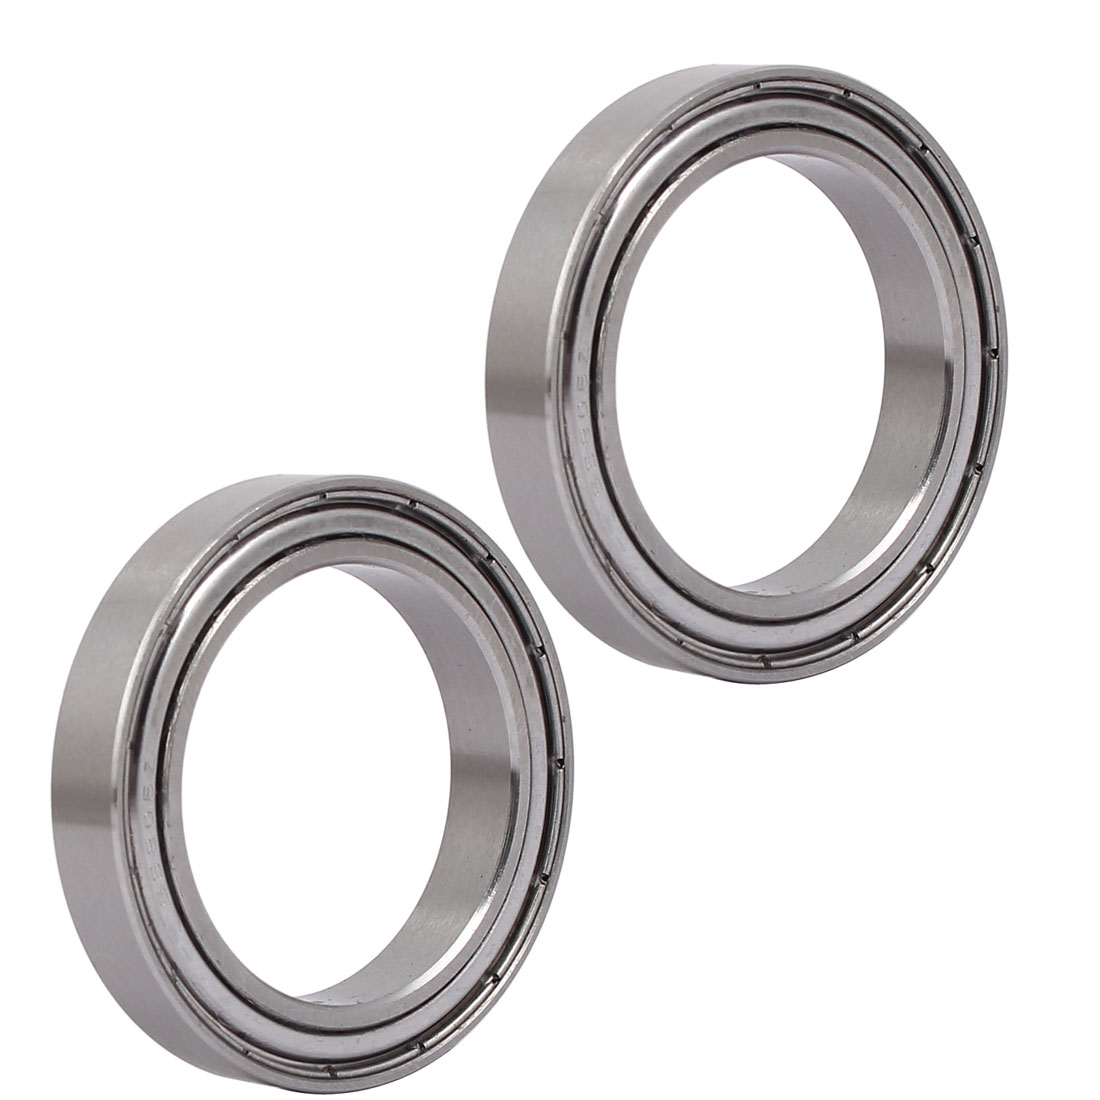 42mmx30mmx7mm 6806 Stainless Steel Shielded Deep Groove Ball Bearing 2pcs